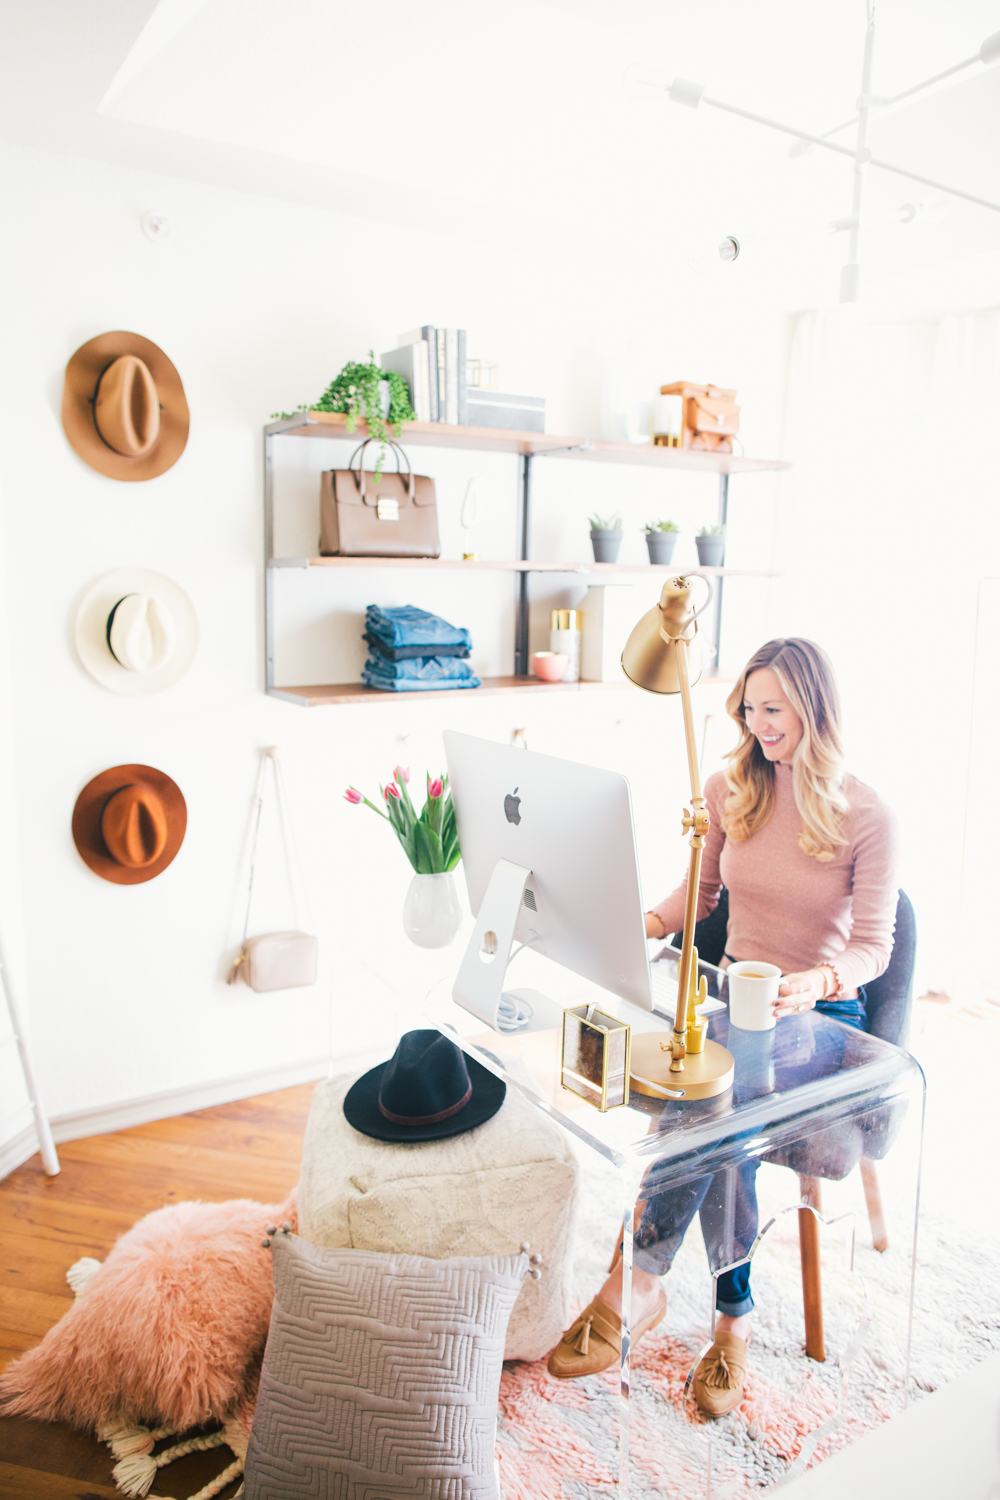 livvyland-blog-olivia-watson-west-elm-home-office-before-after-reveal-pink-grey-cozy-chic-white-airy-girly-austin-texas-fashion-blogger-22